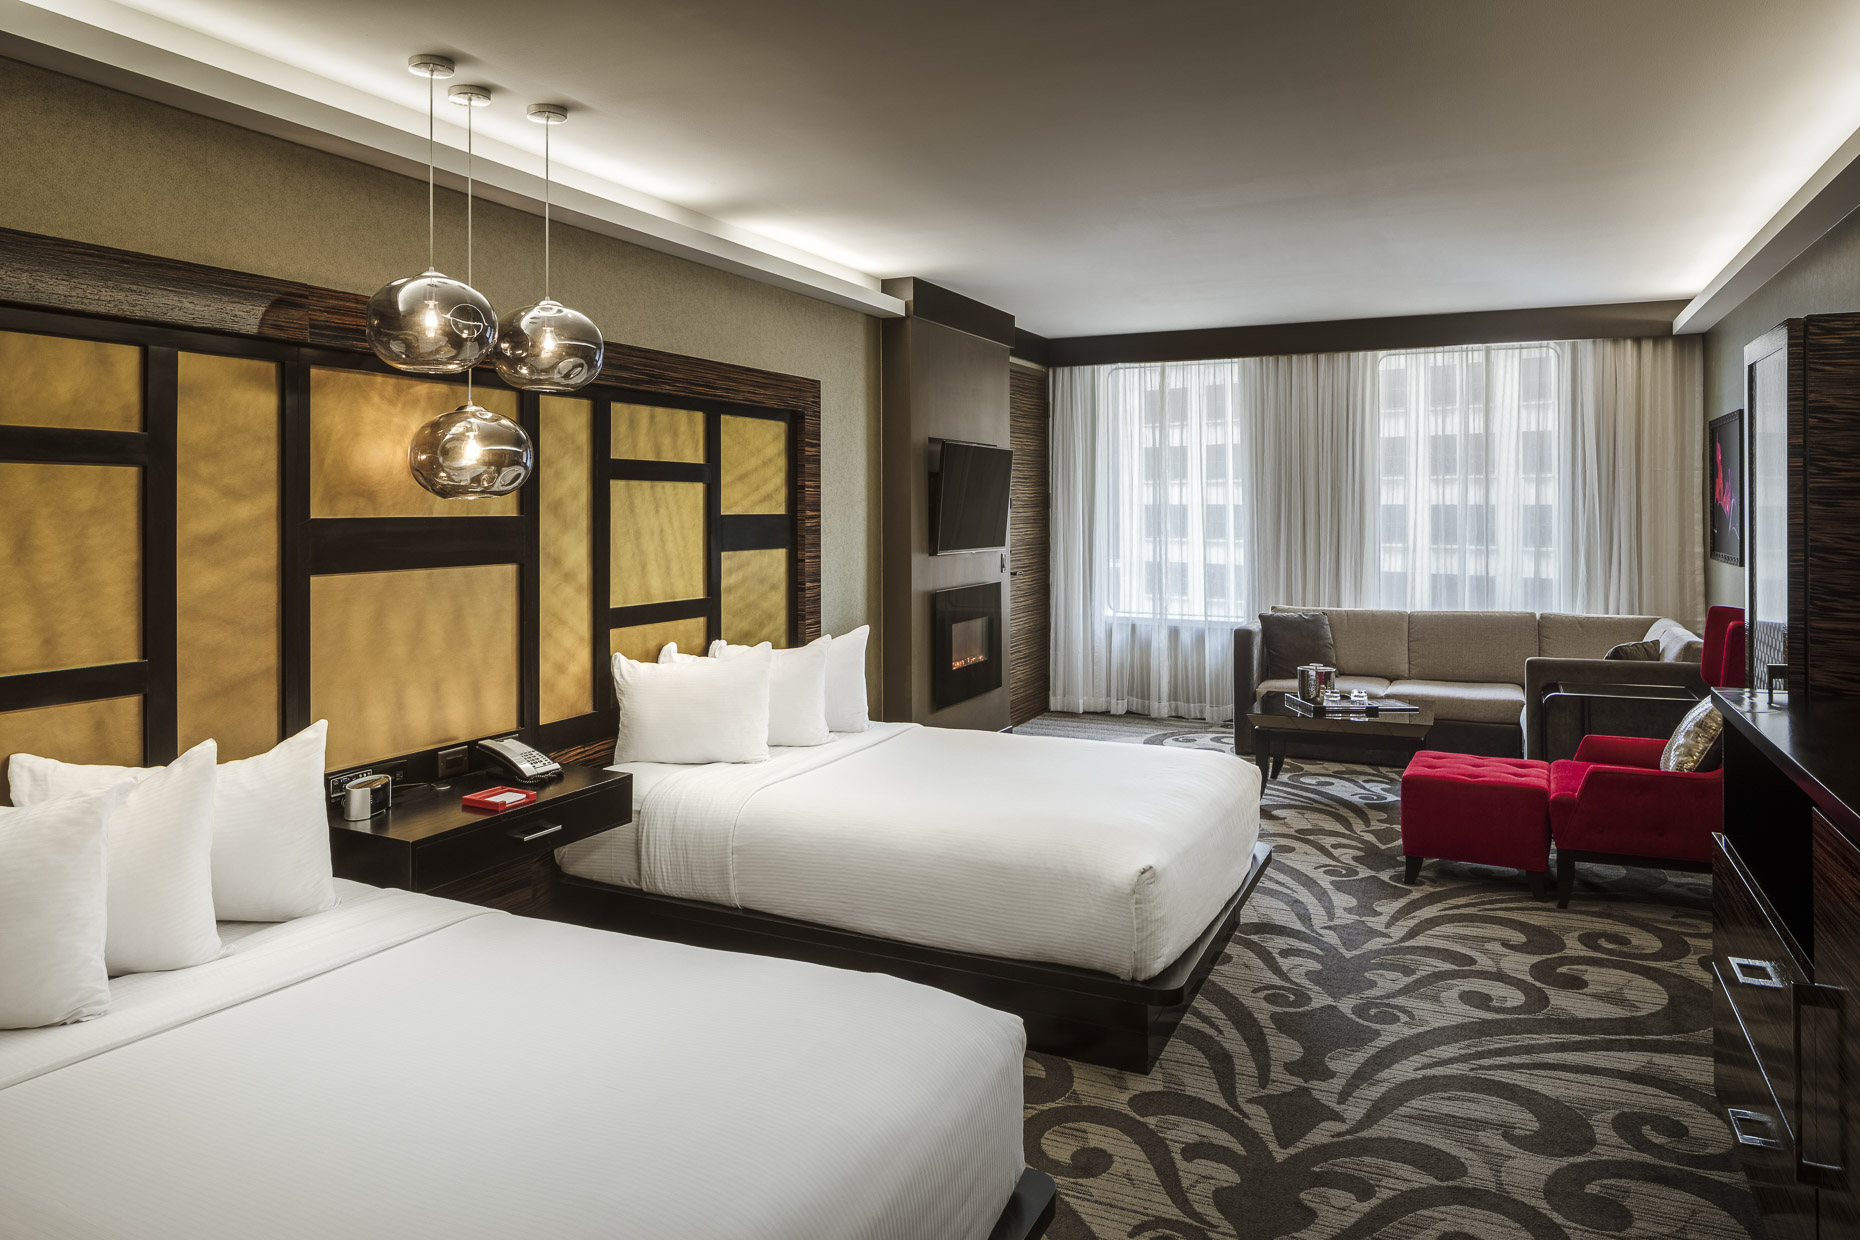 Metropolitan at the 9, Autograph Collection Hotels by Marriott photographed by Lauren K Davis based in Columbus, Ohio